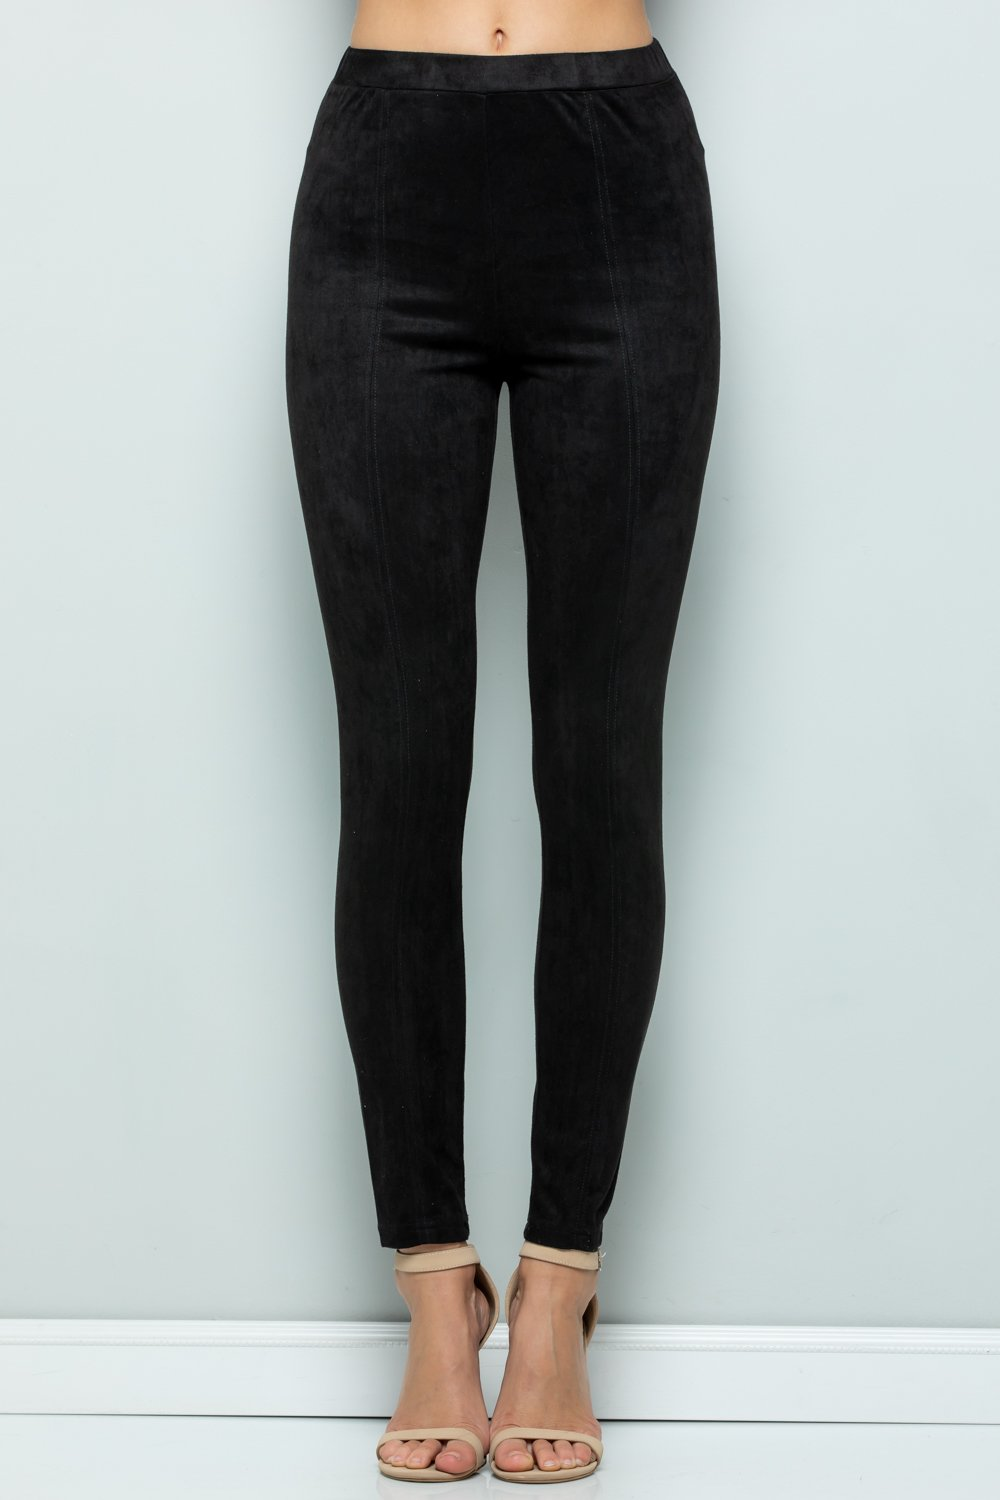 Stretchy Suede Pants Comfortable